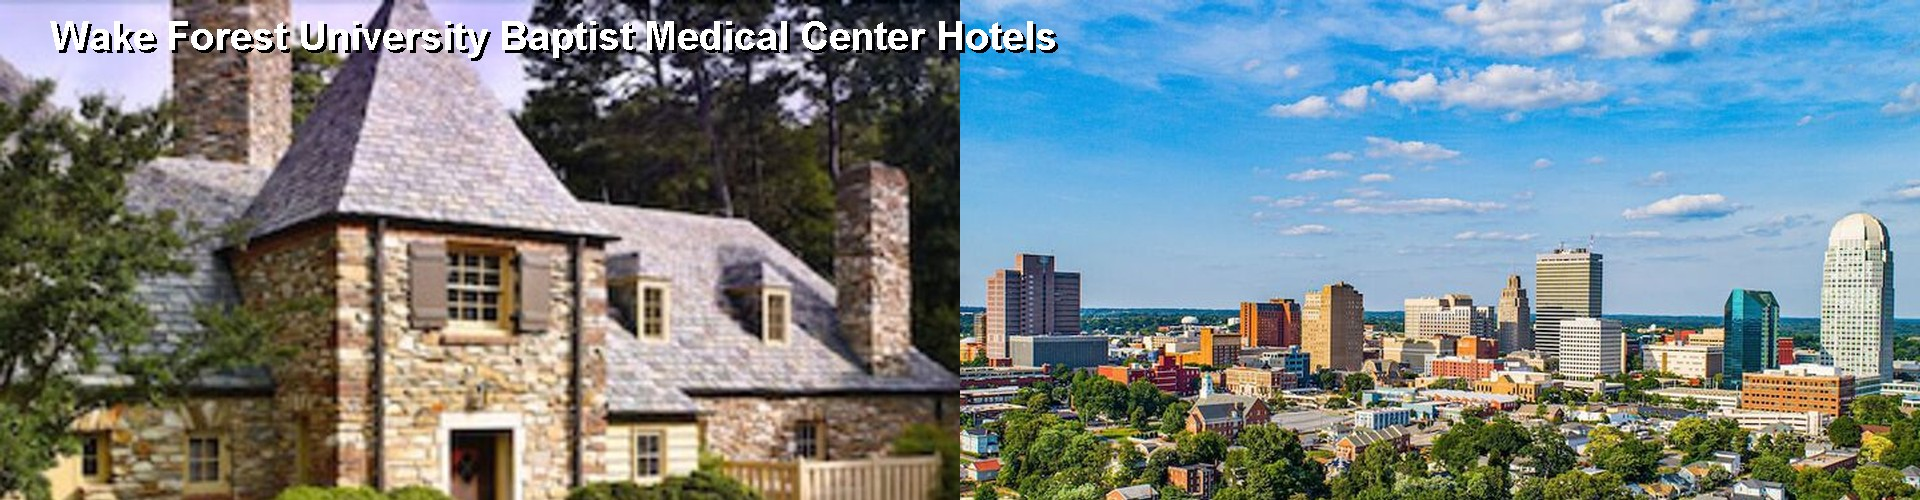 5 Best Hotels near Wake Forest University Baptist Medical Center